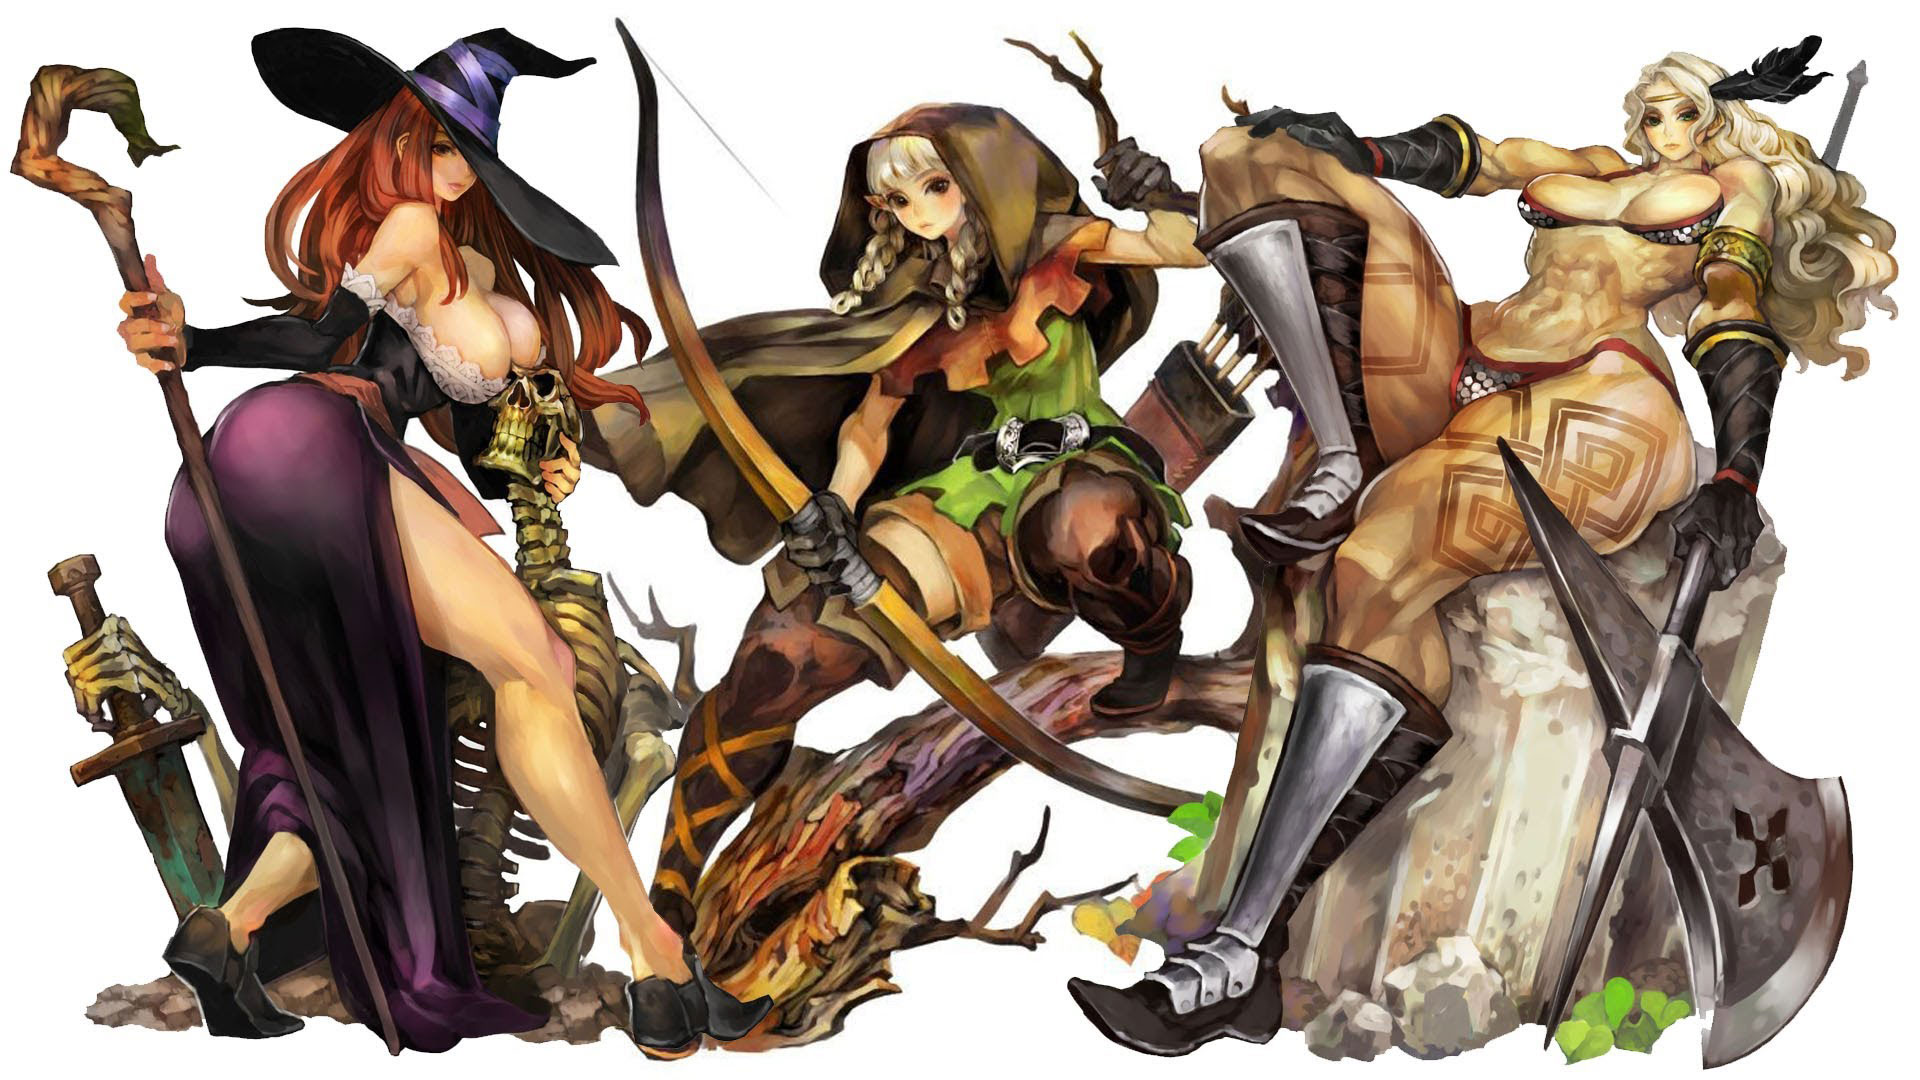 Dragon's Crown Pro PS4 vrplayer.fr